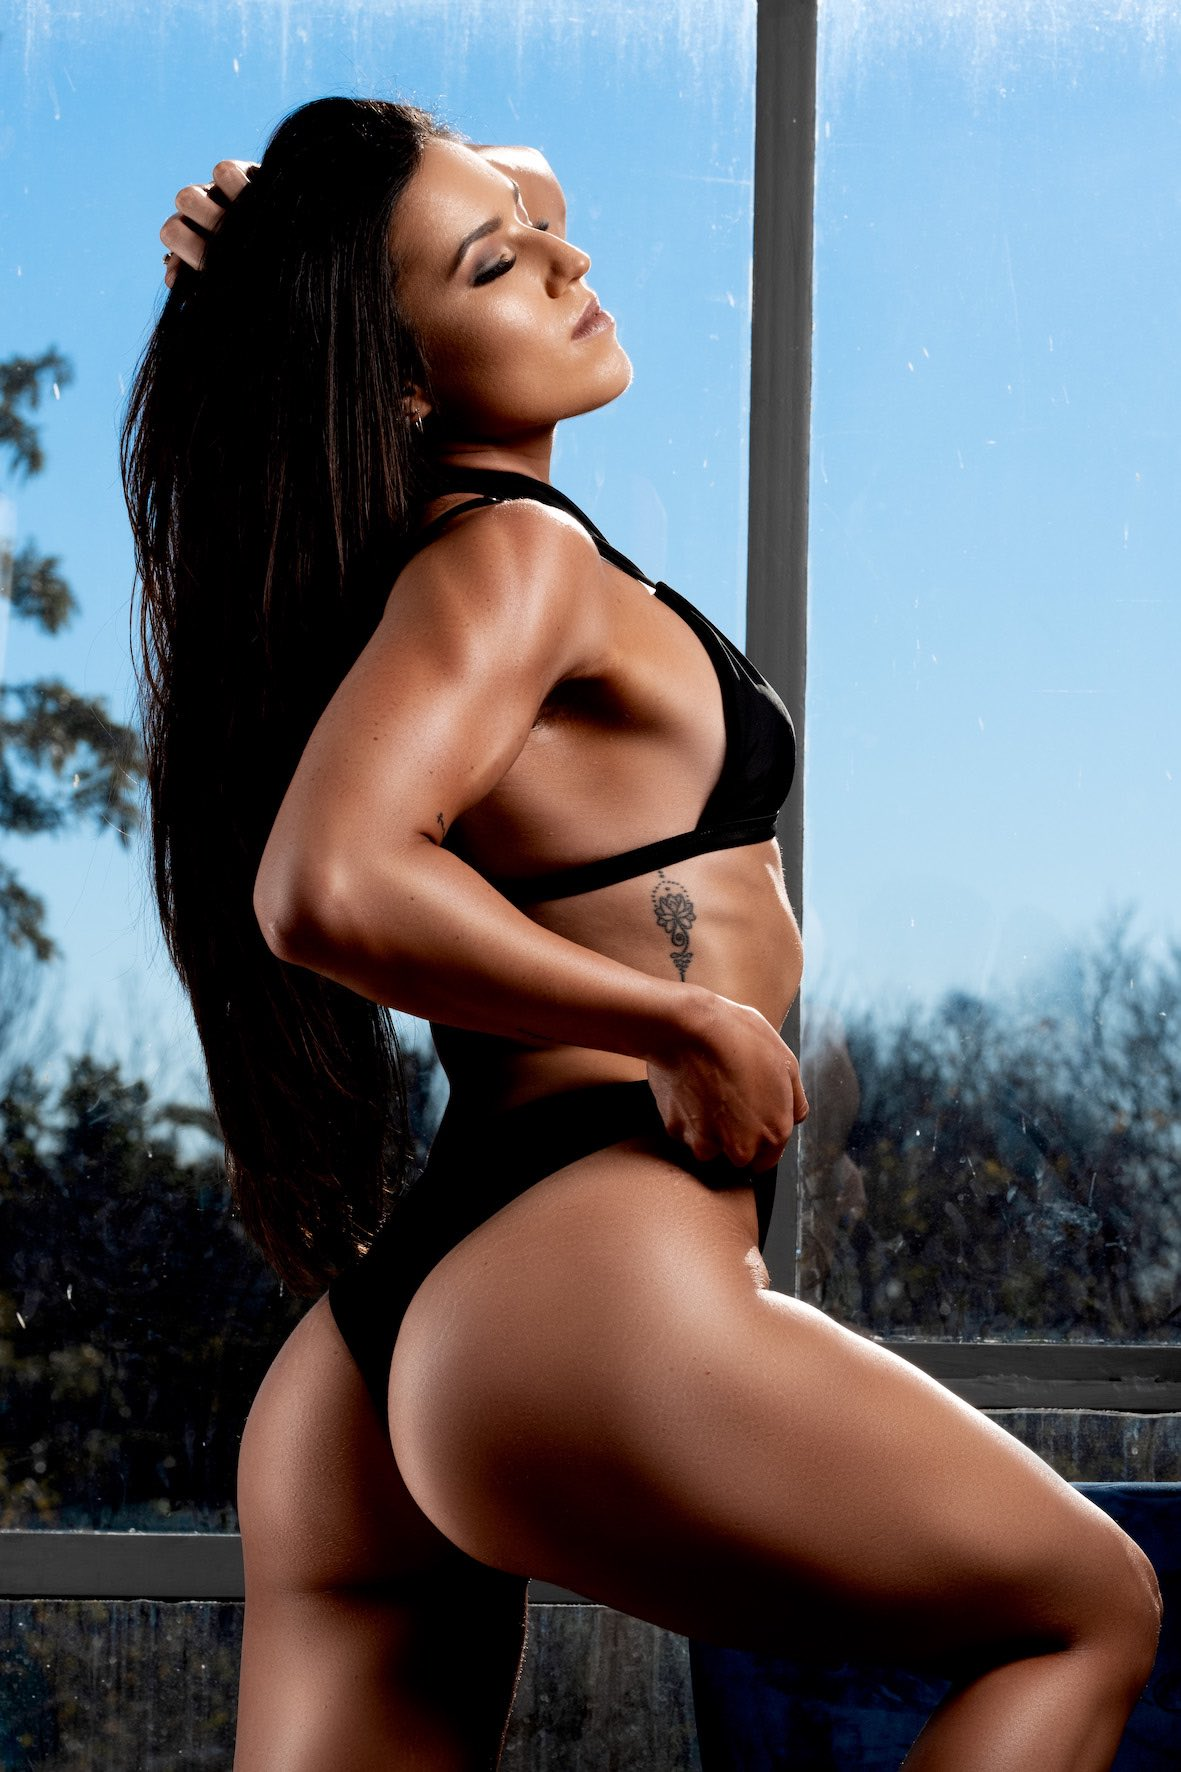 Meet our LW Babe of the Week Ashleigh Wilson